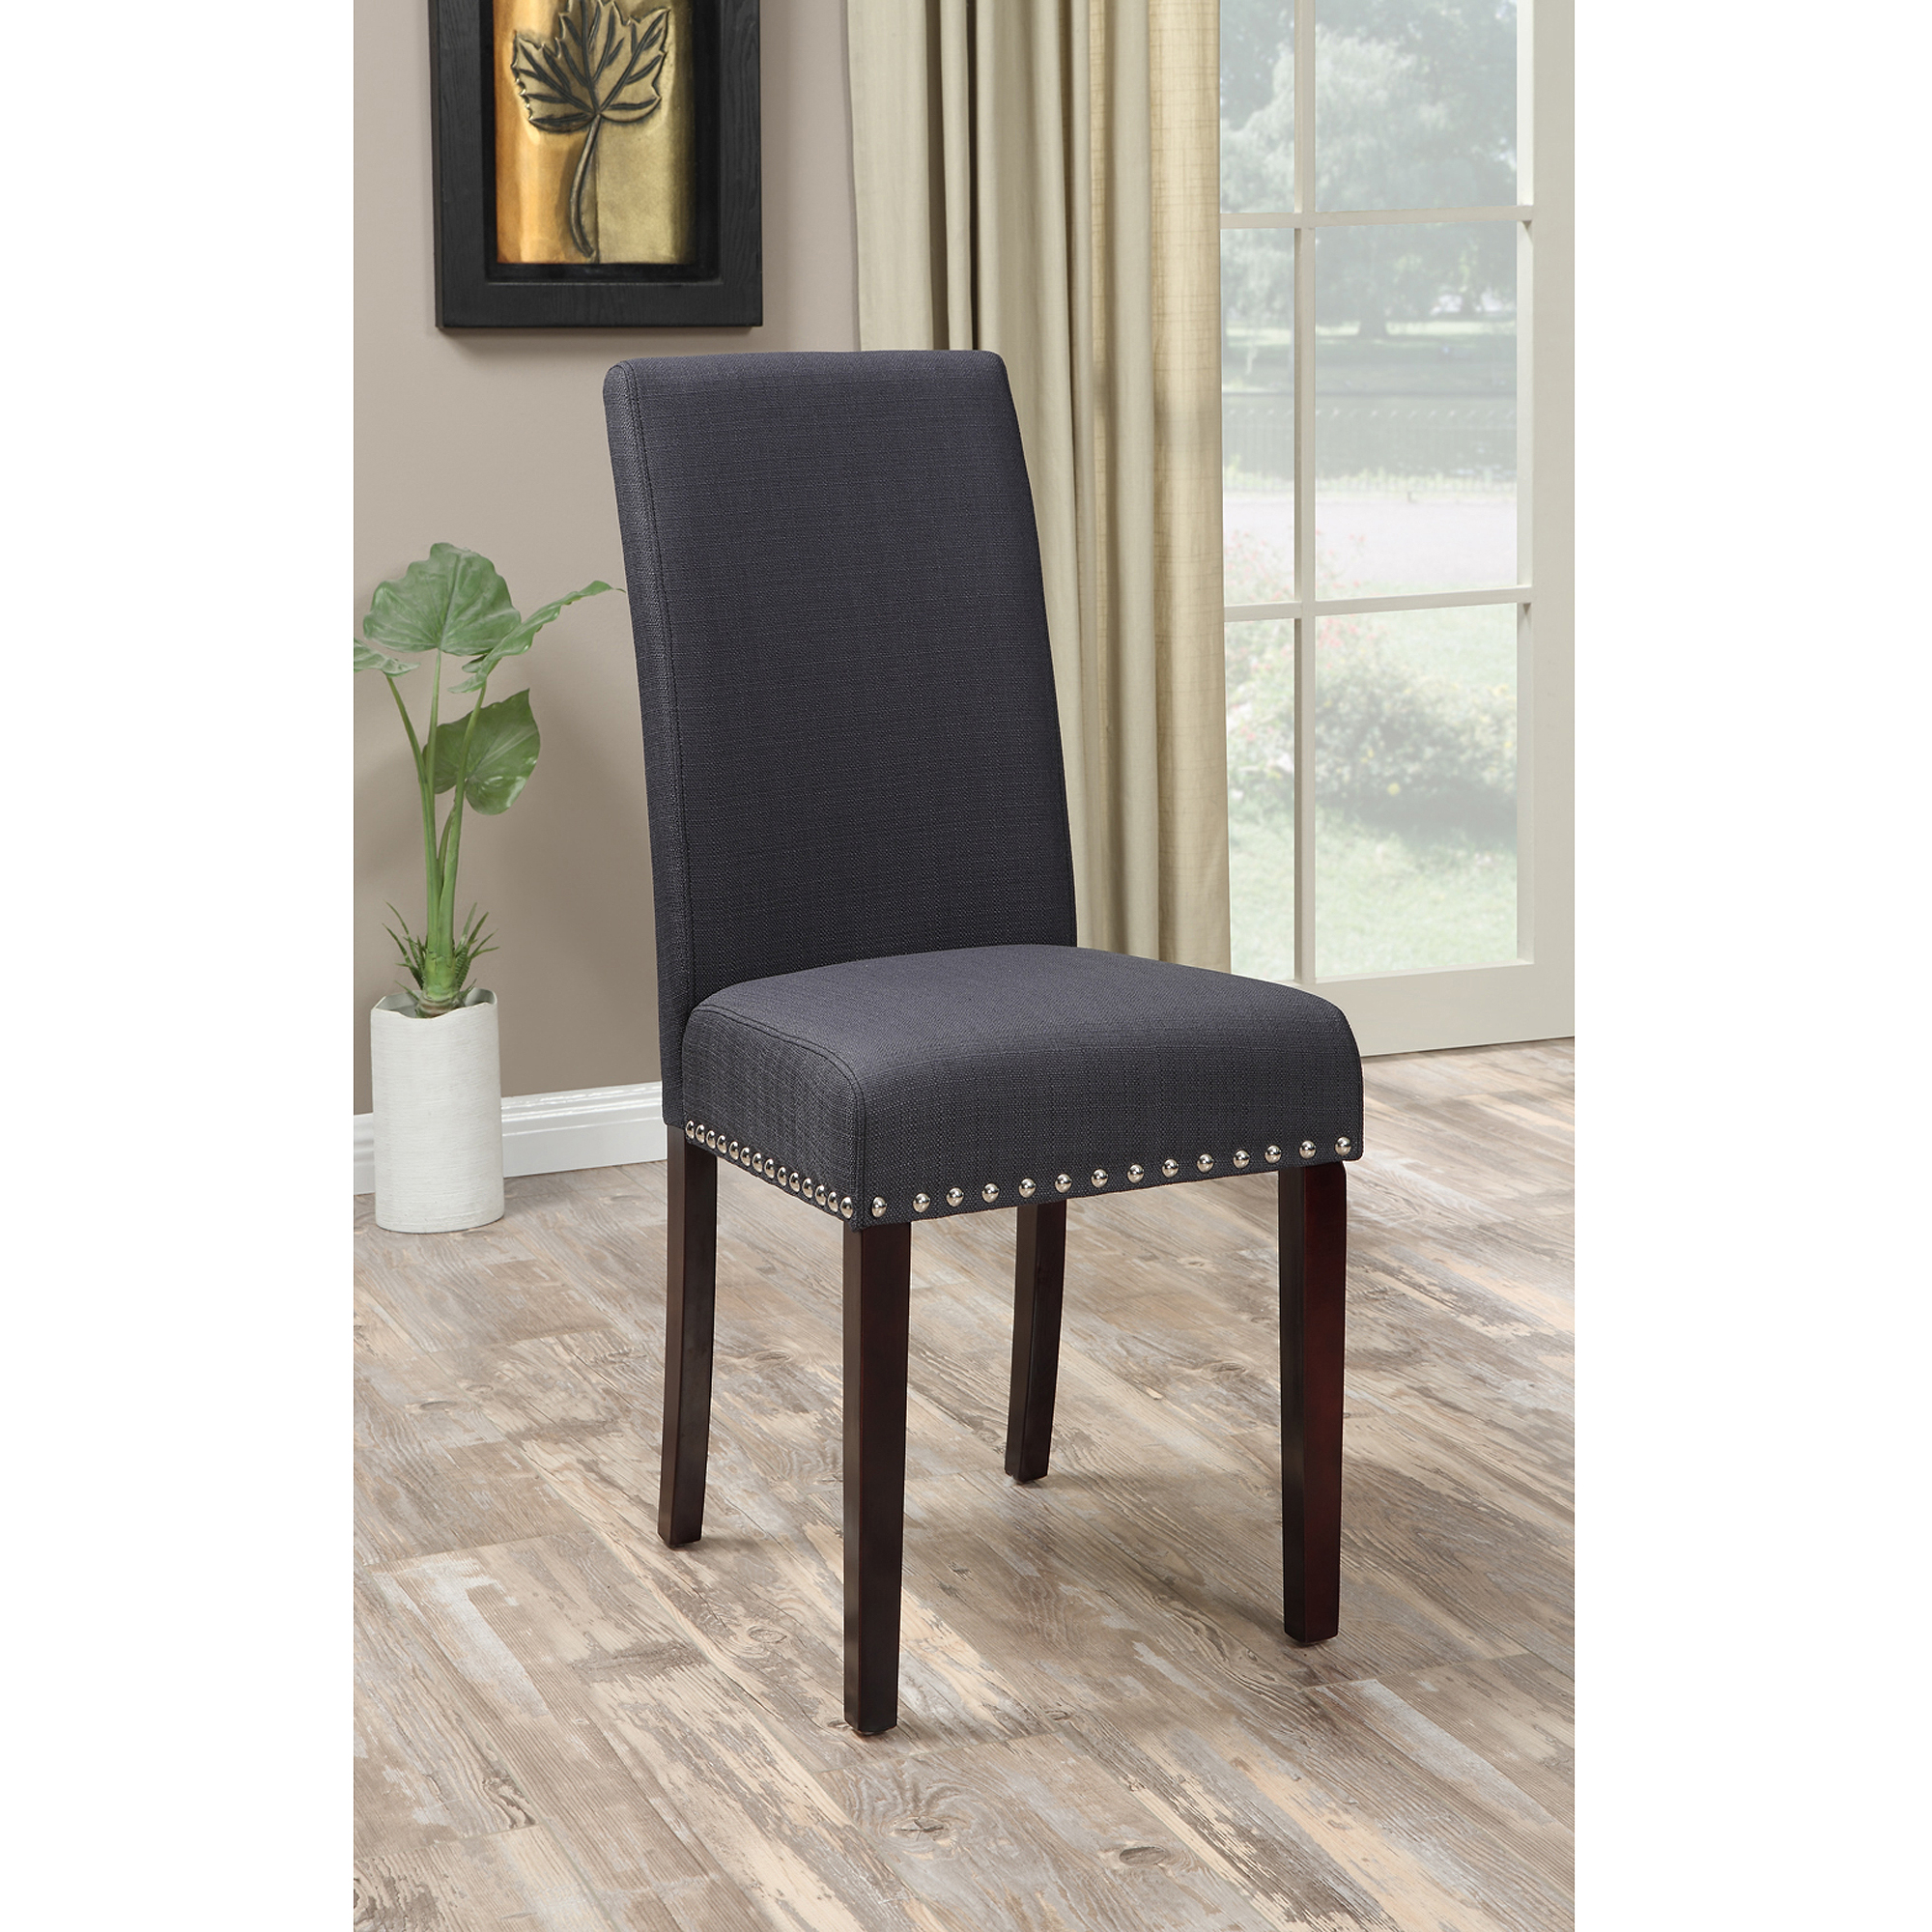 Restaurant Chairs And Tables Dhi Nice Nail Head Upholstered Dining Chair 2 Pack Multiple Colors